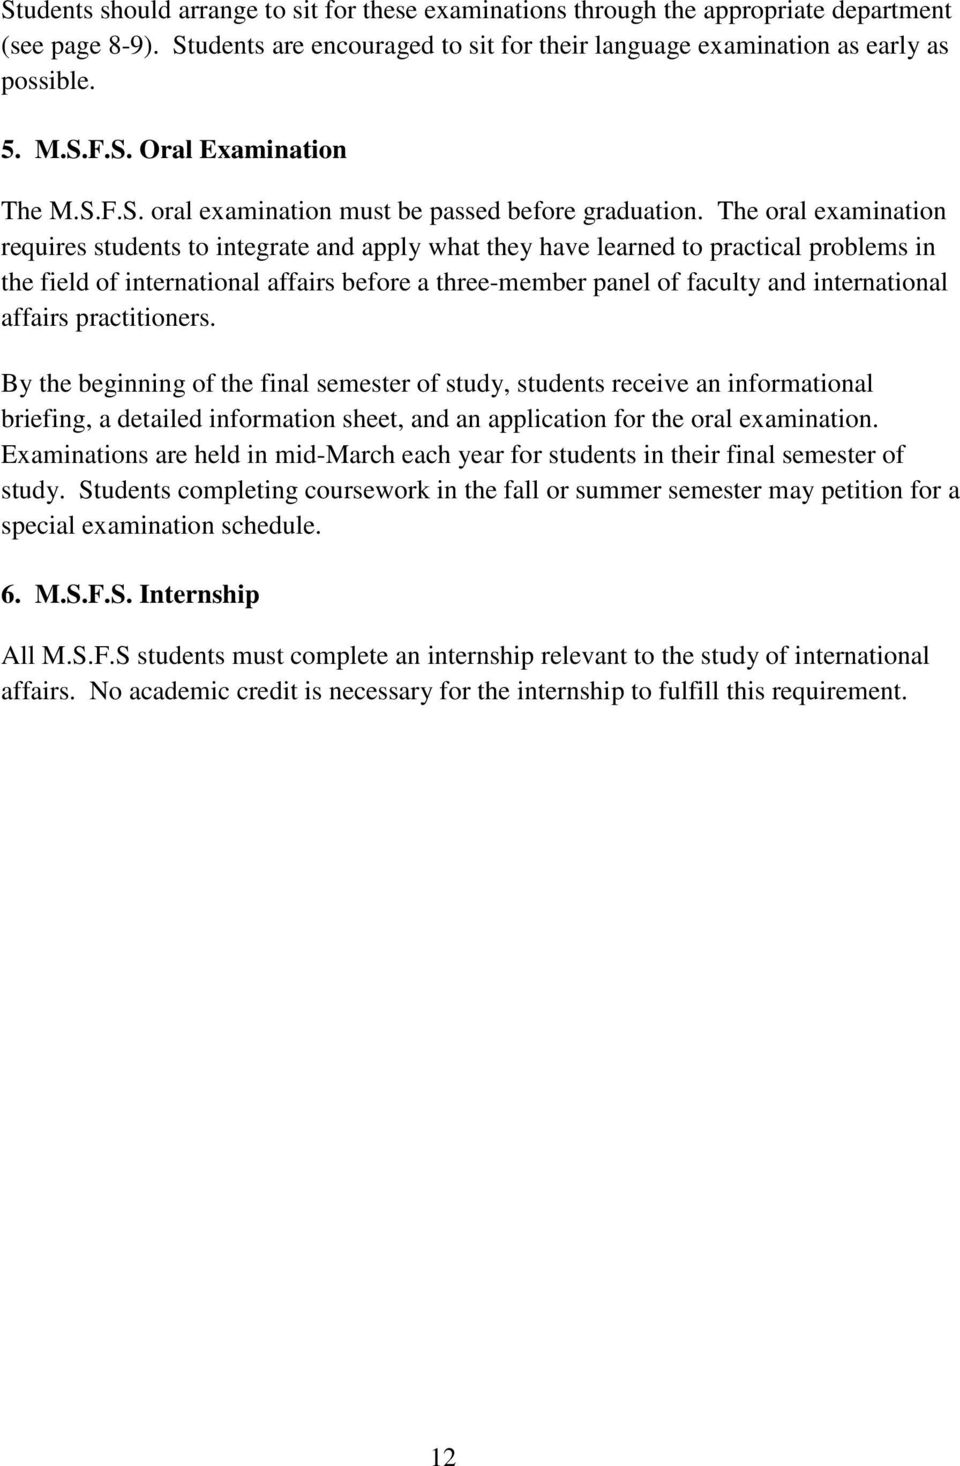 J D /M S F S  (Master of Science in Foreign Service) JOINT